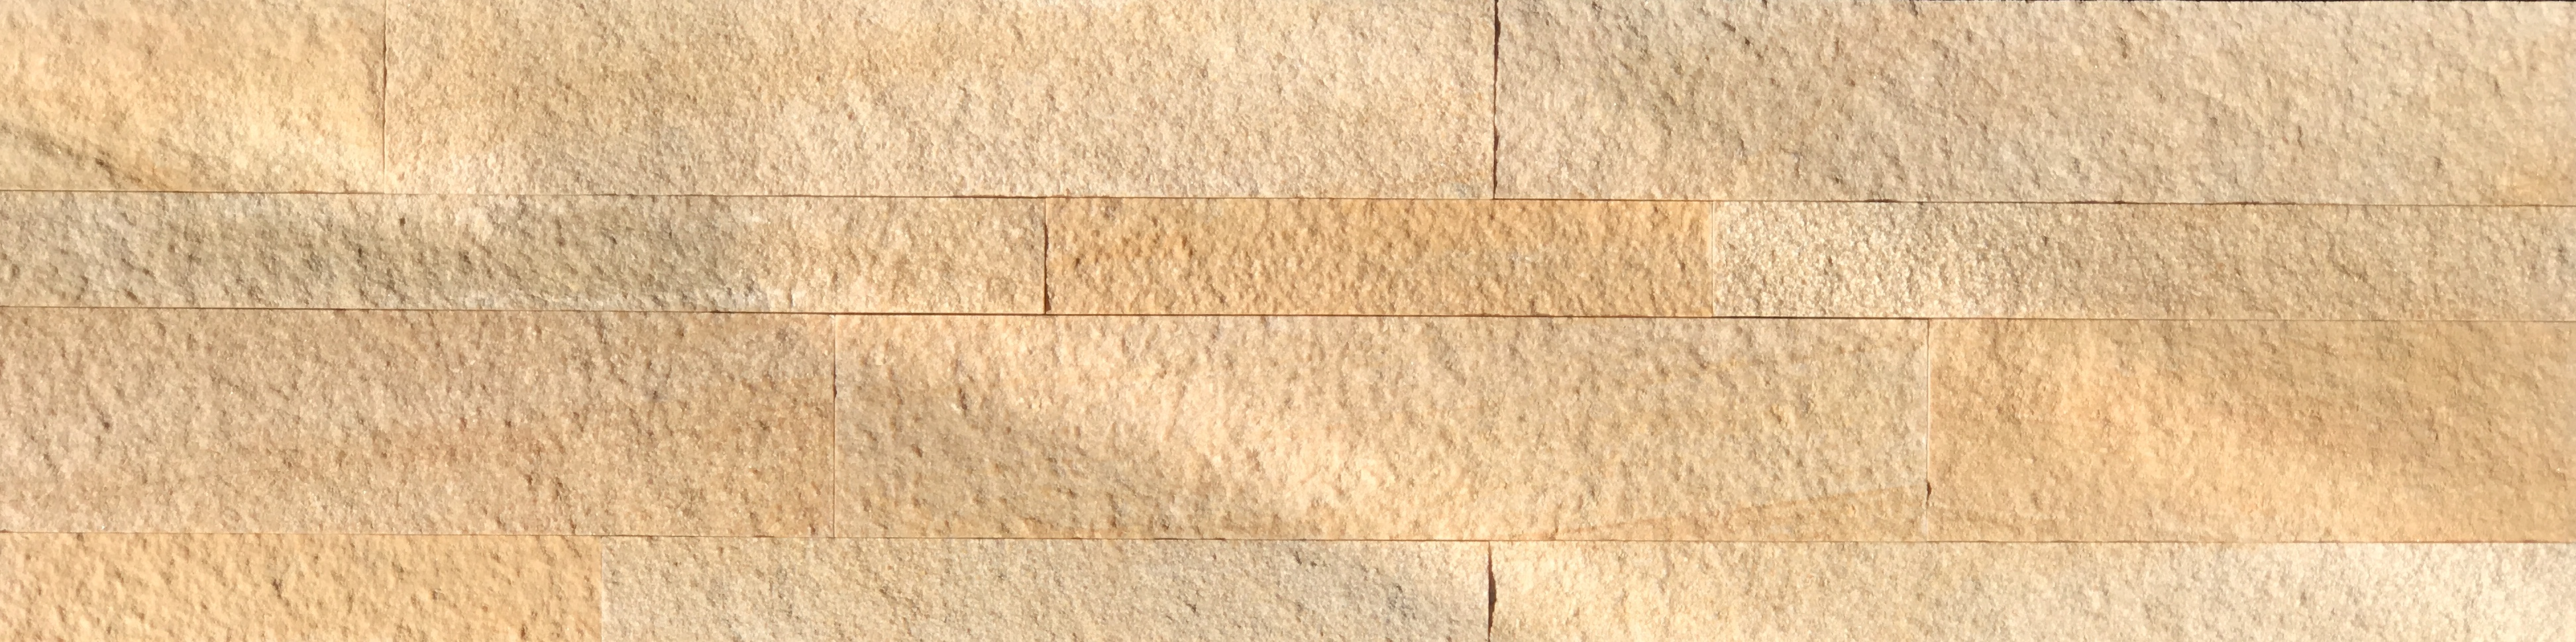 Timber Slimline Ledgestone Panel Image